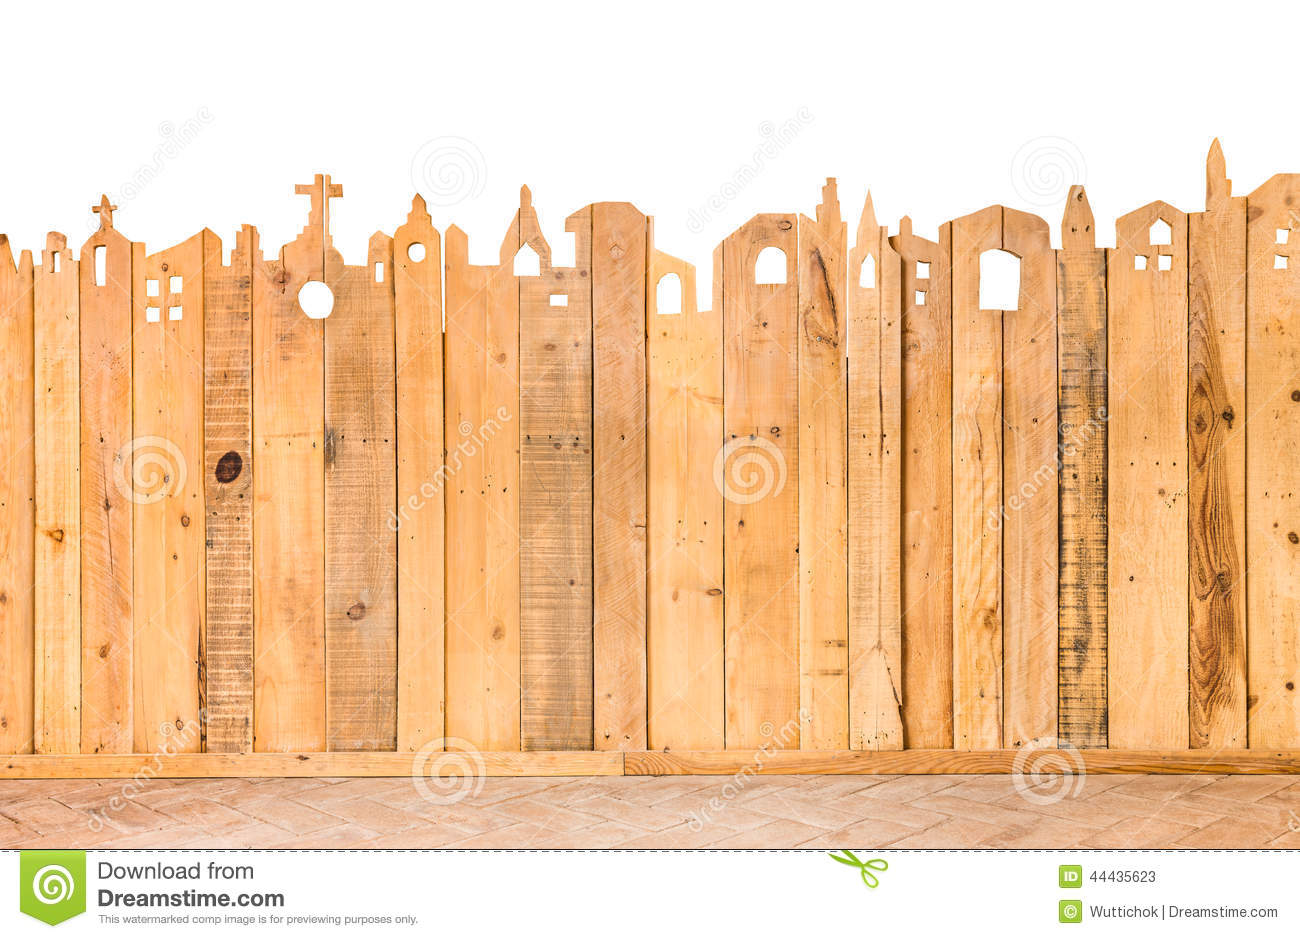 D tail de mod le de texture en bois de barri re photo stock image 44435623 - Barriere en bois ...